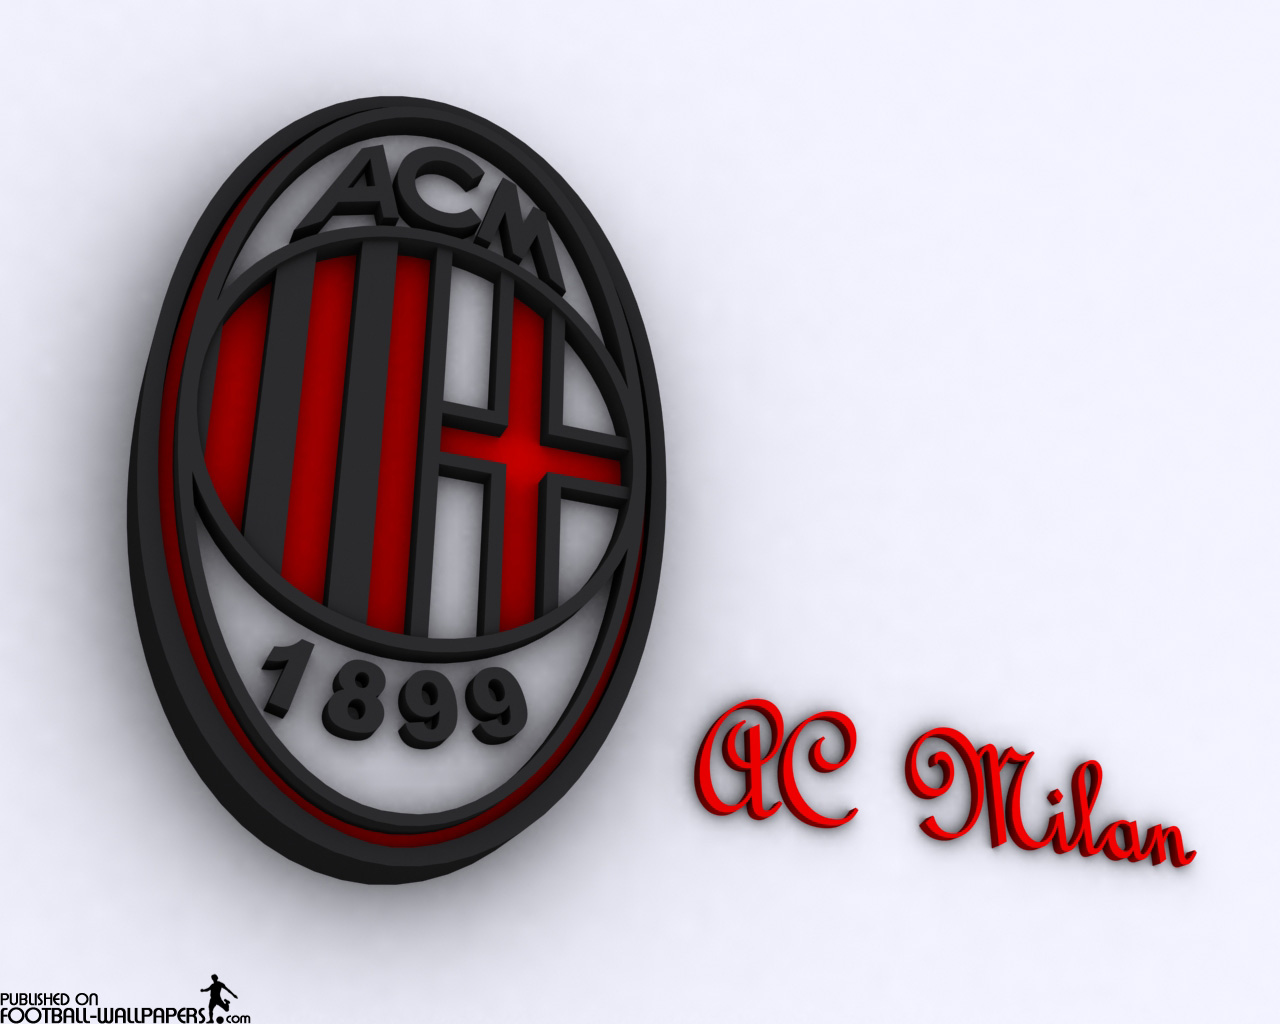 Hd wallpaper ac milan - Ac Milan Football Logo Wallpaper High Definition 2013